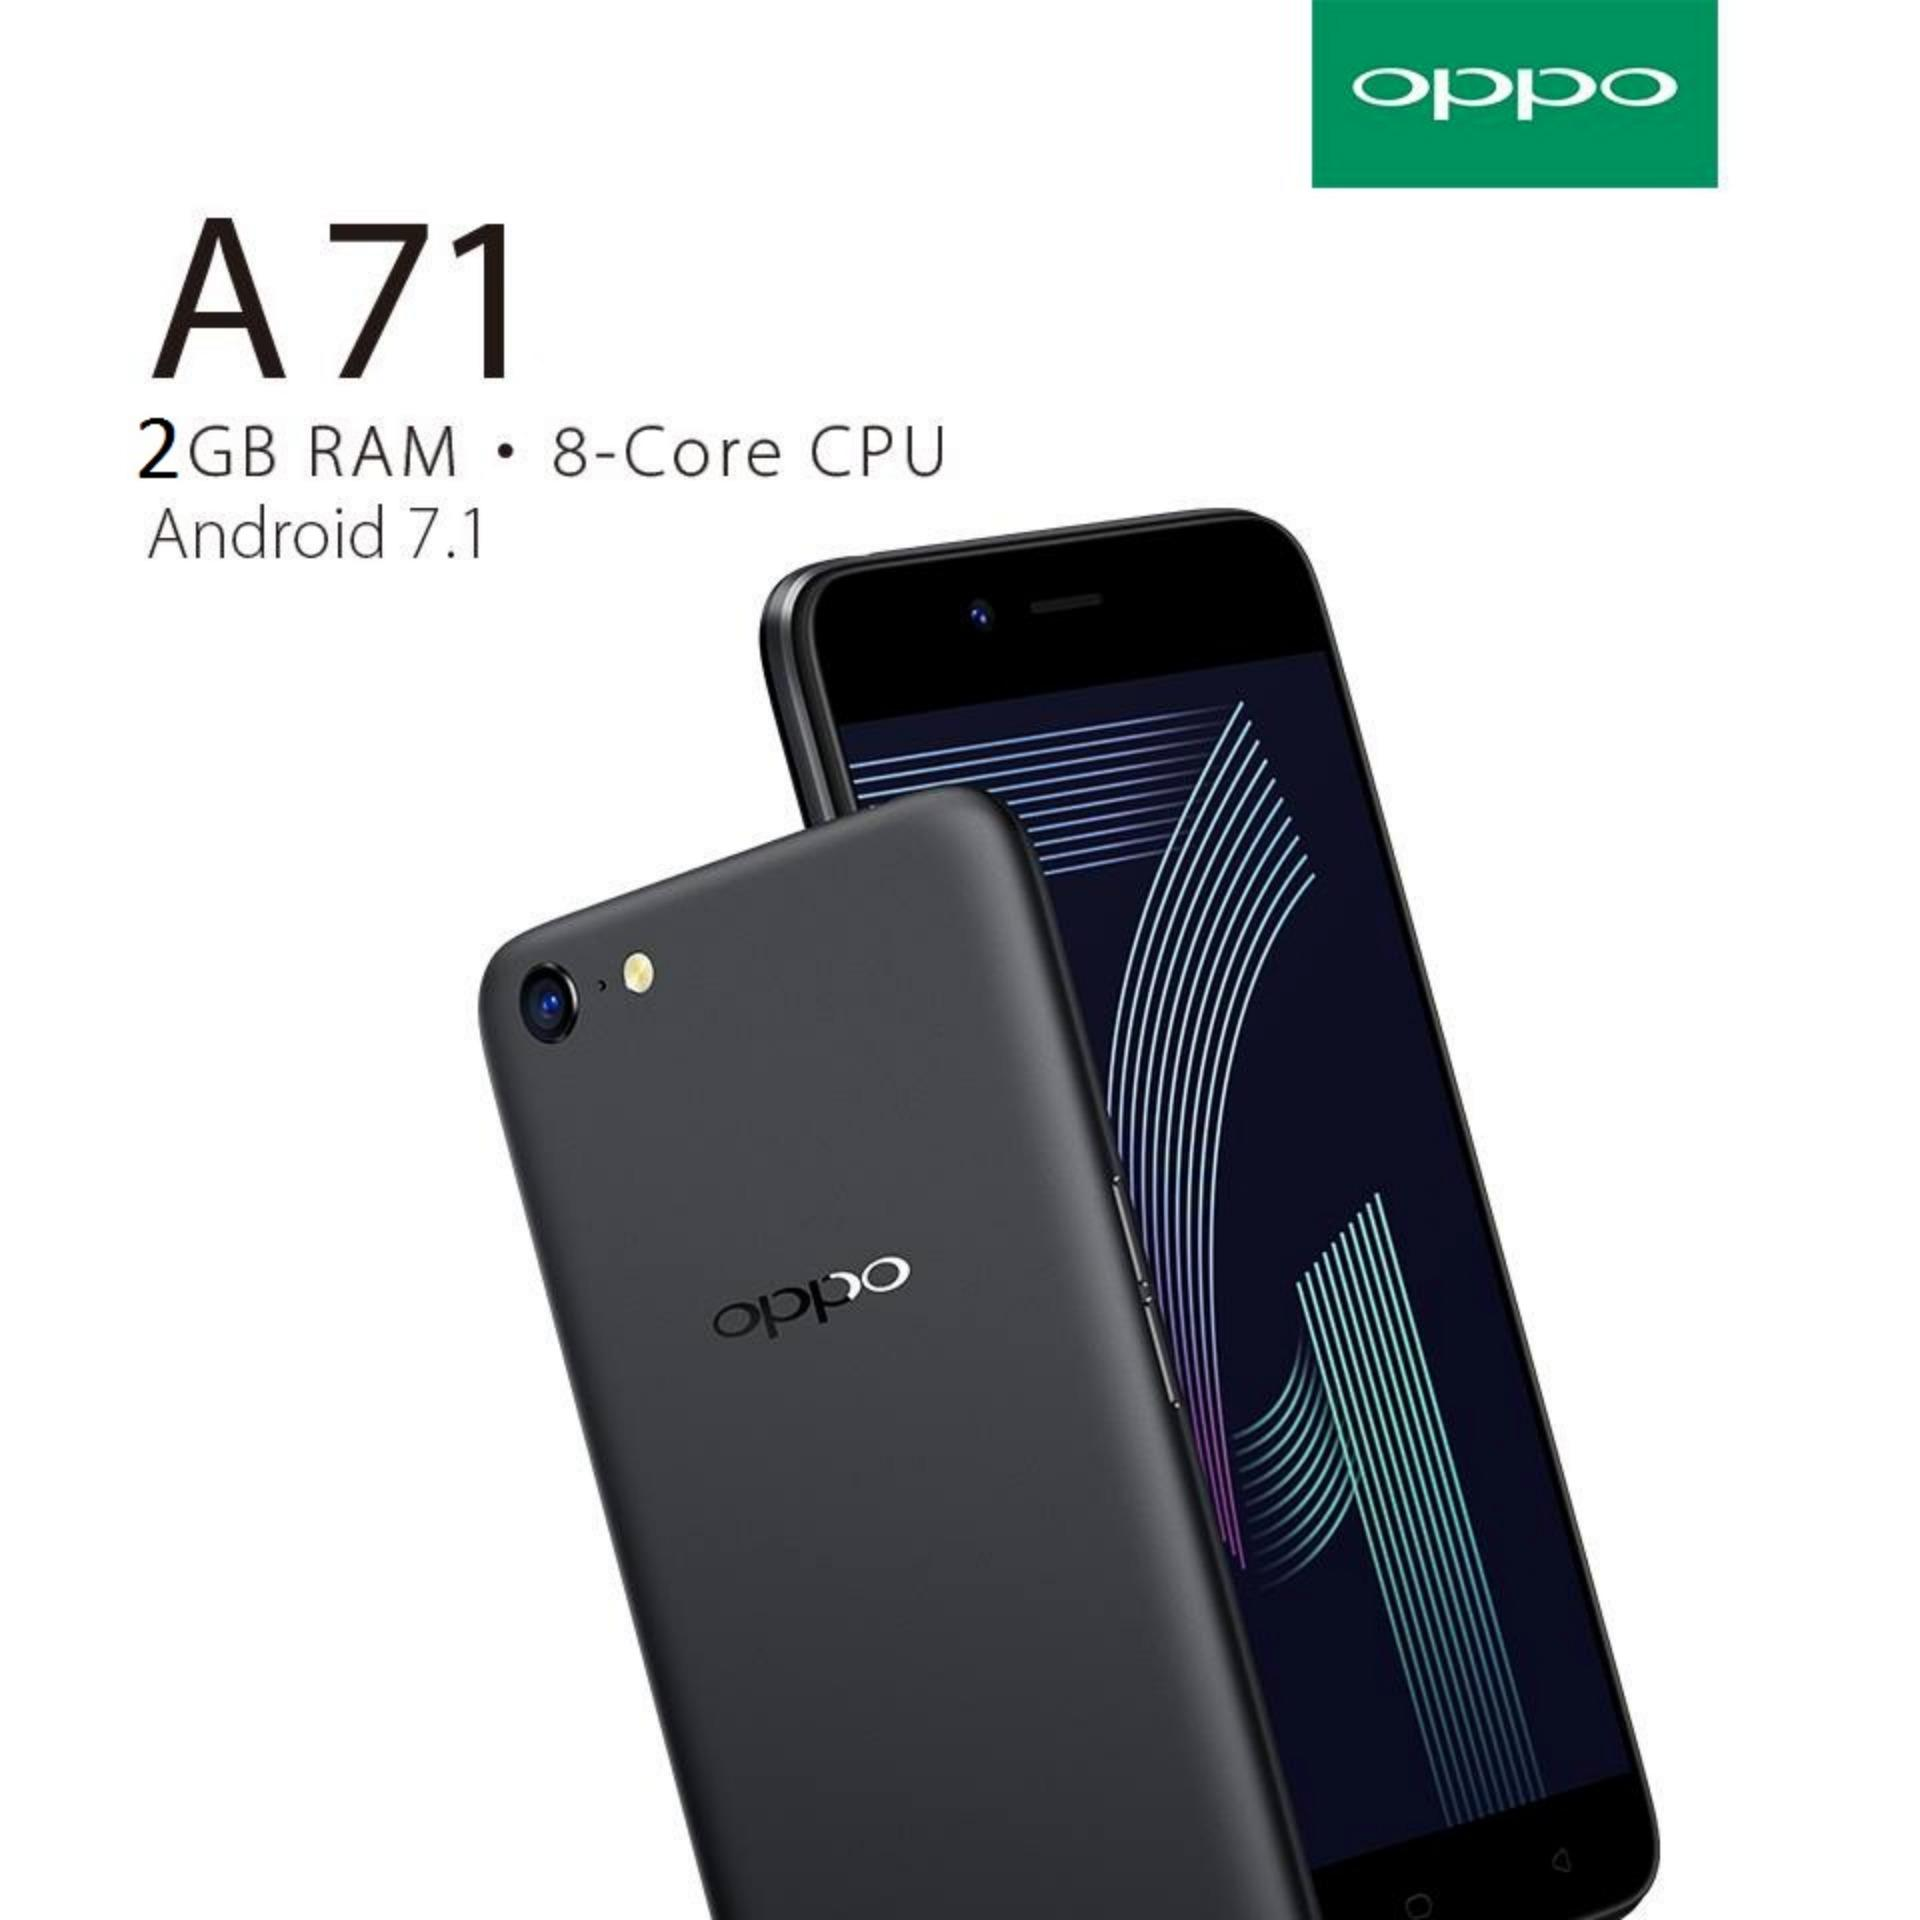 Jual Oppo A71 Android 7 1 Nougot 2 Gb Ram 16 Gb Rom Jawa Barat